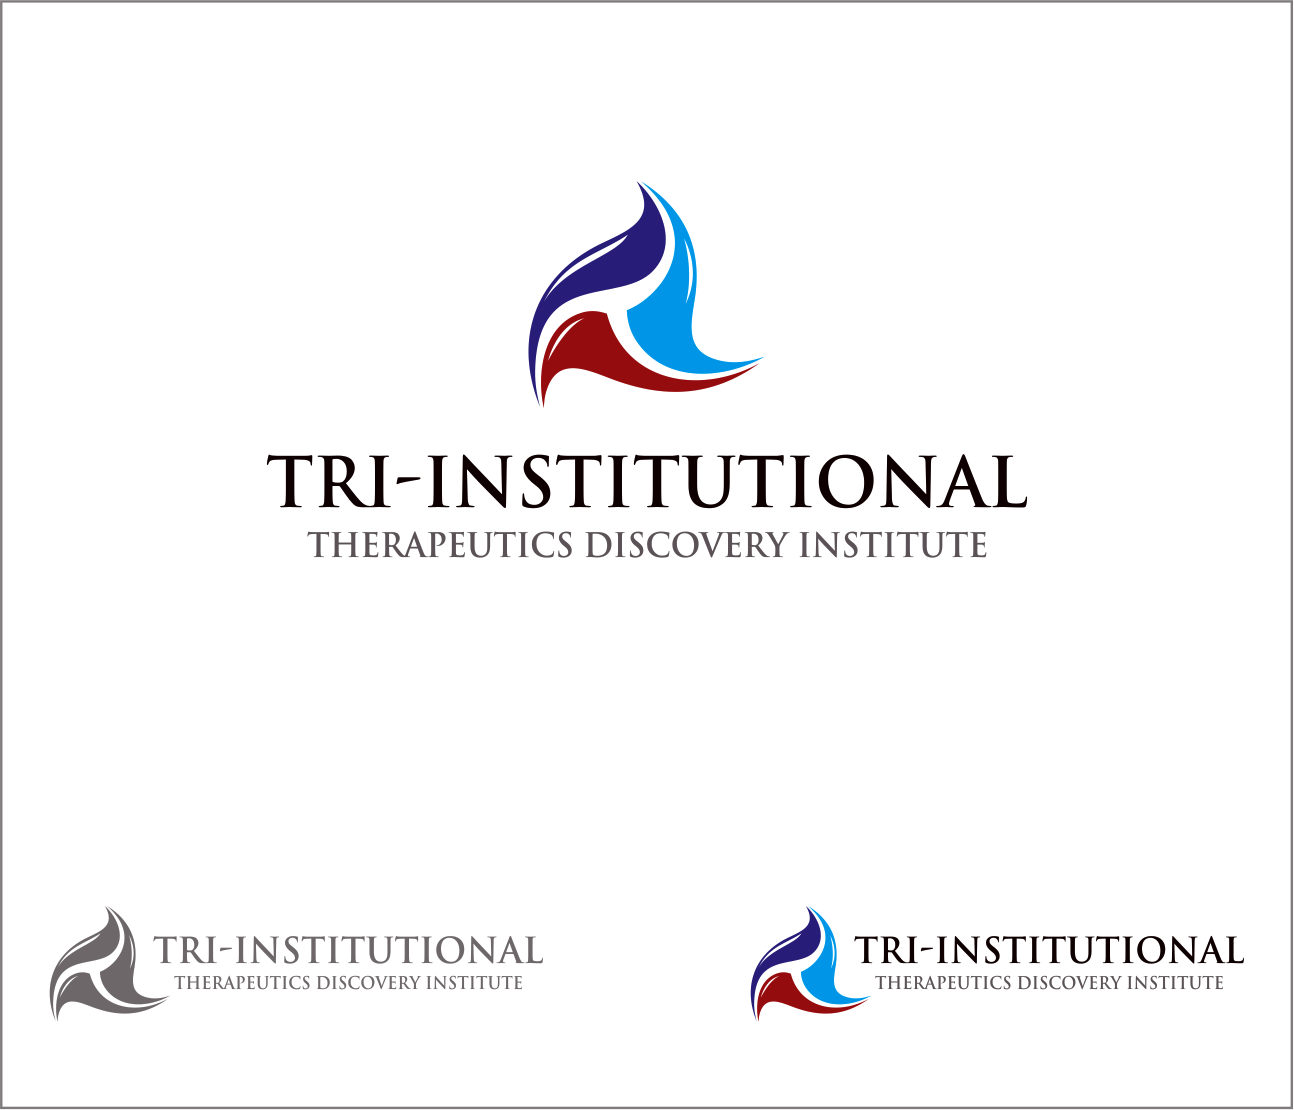 Logo Design by Armada Jamaluddin - Entry No. 150 in the Logo Design Contest Inspiring Logo Design for Tri-Institutional Therapeutics Discovery Institute.